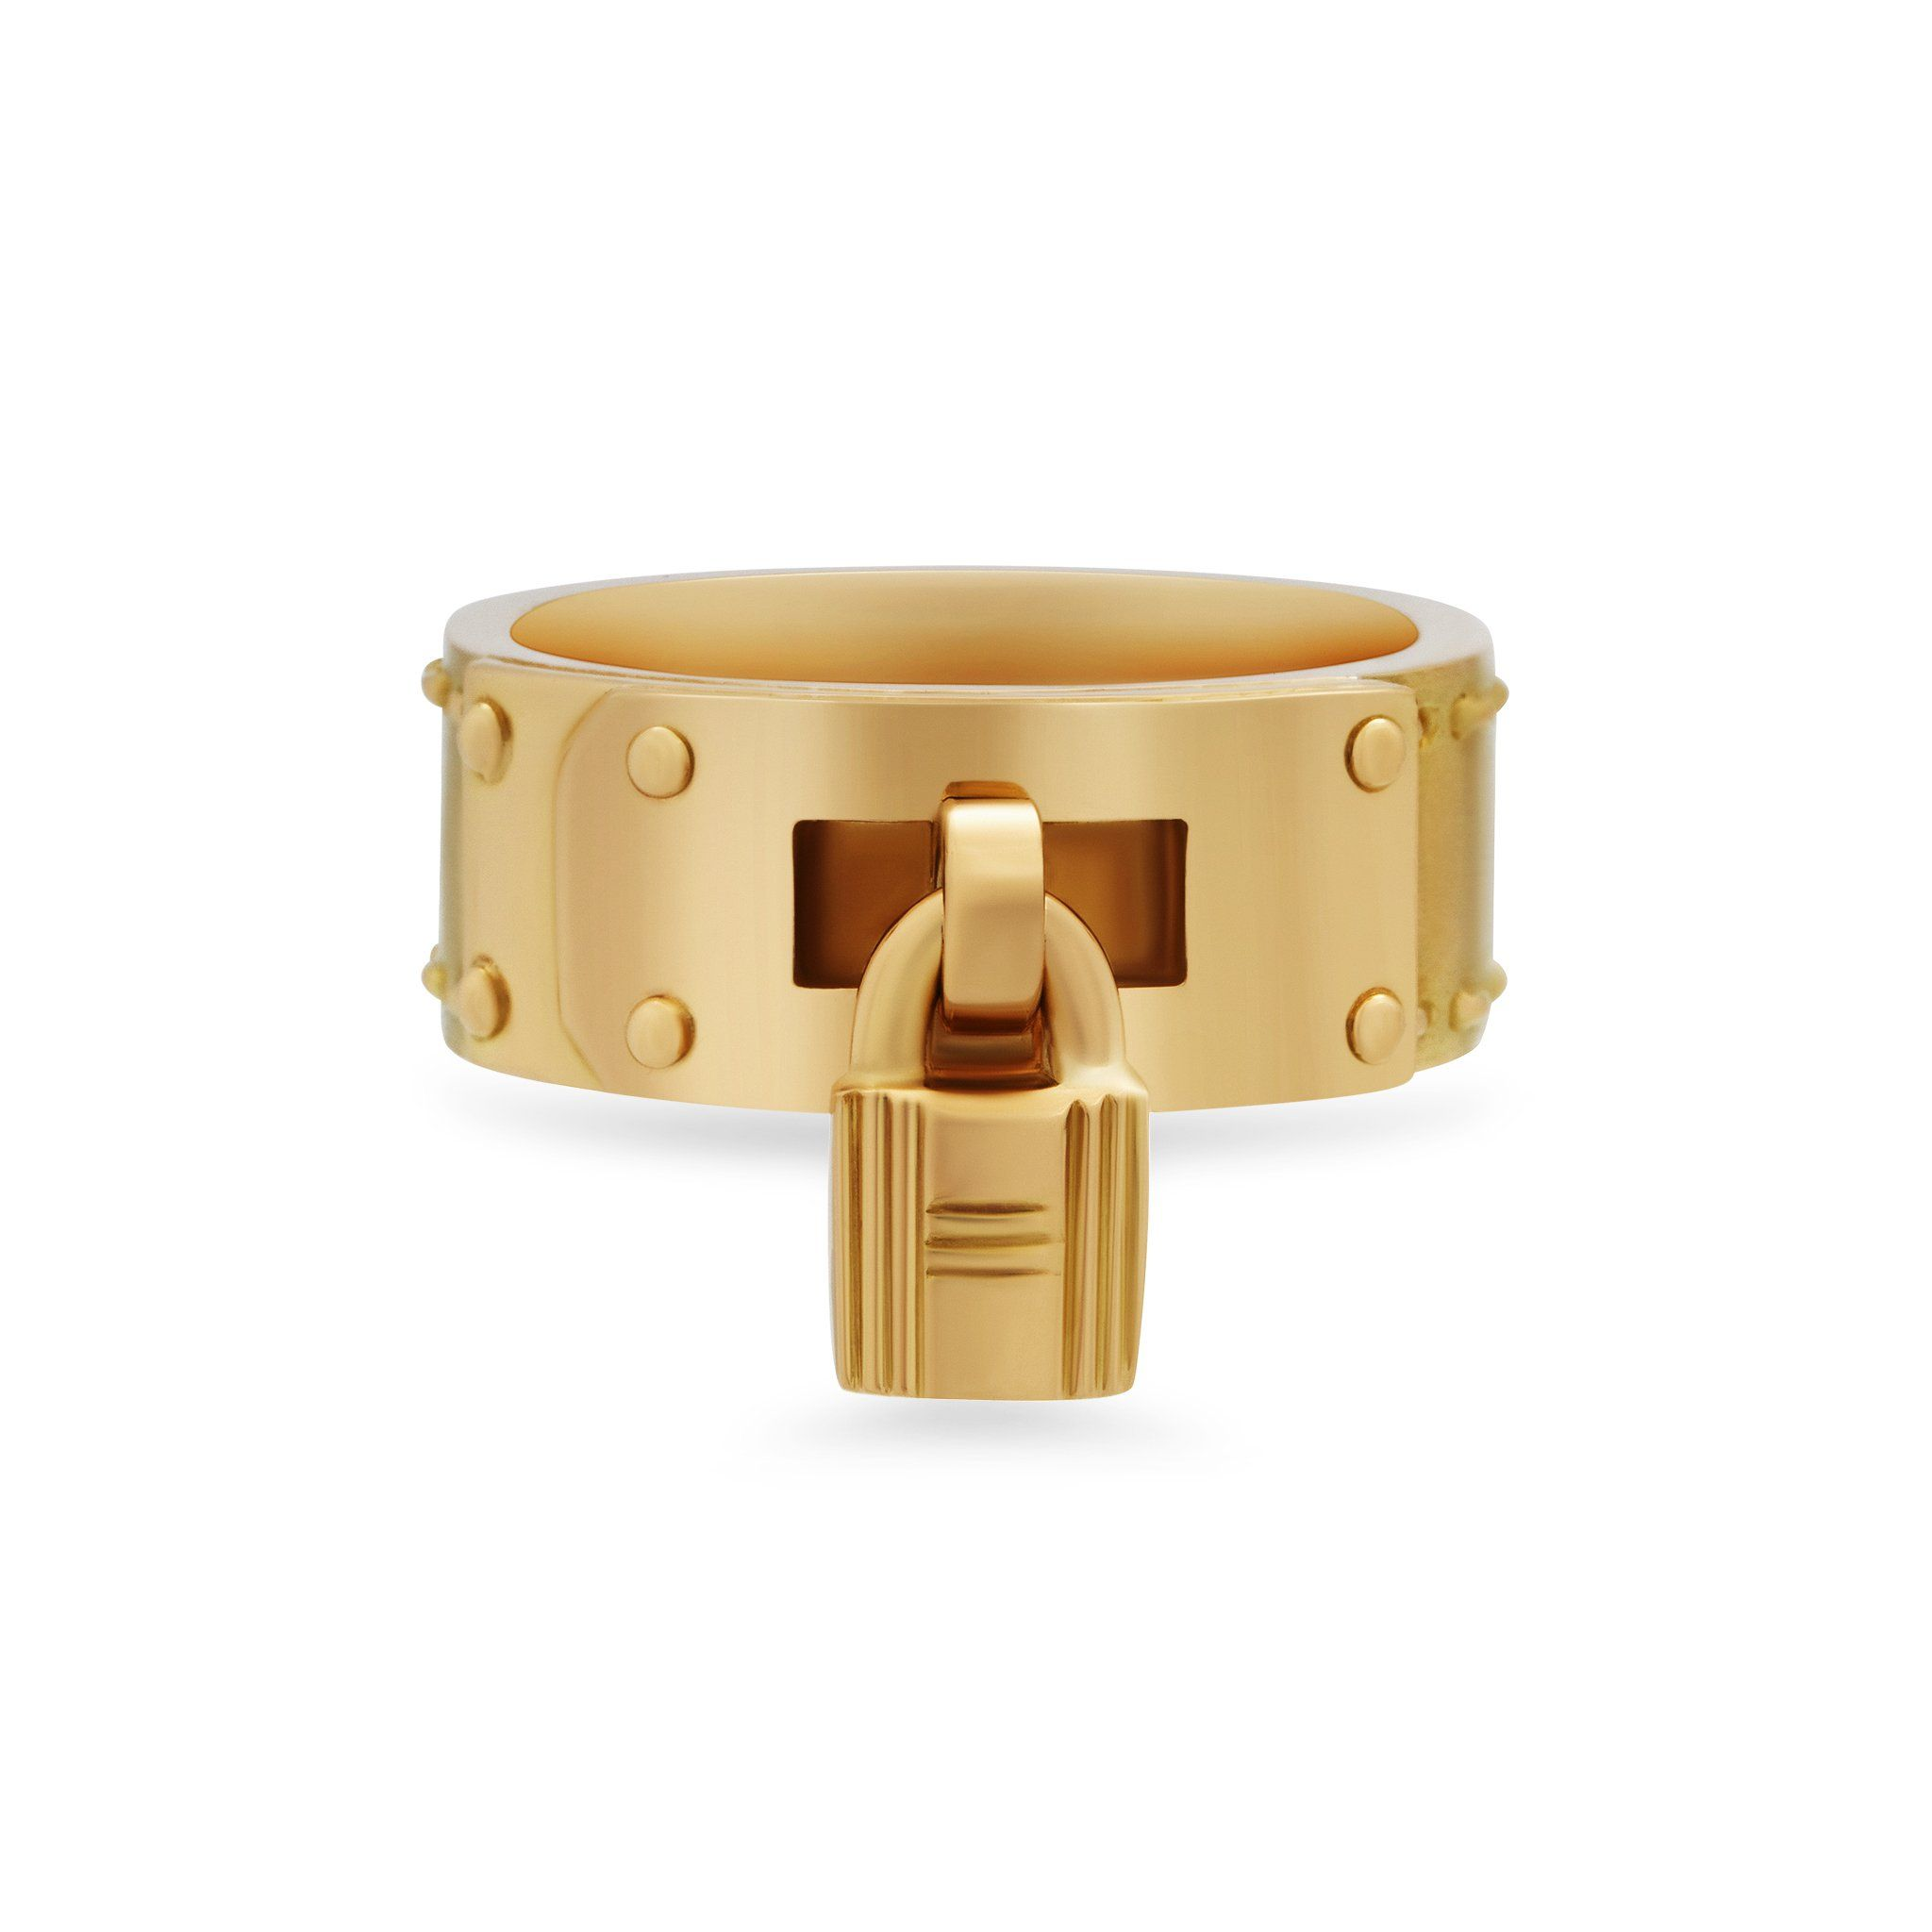 Hermes 18k Yellow Gold Belt Buckle Ring Size 6 25 Buckle Ring Gold Belt Buckle Jewelry Design